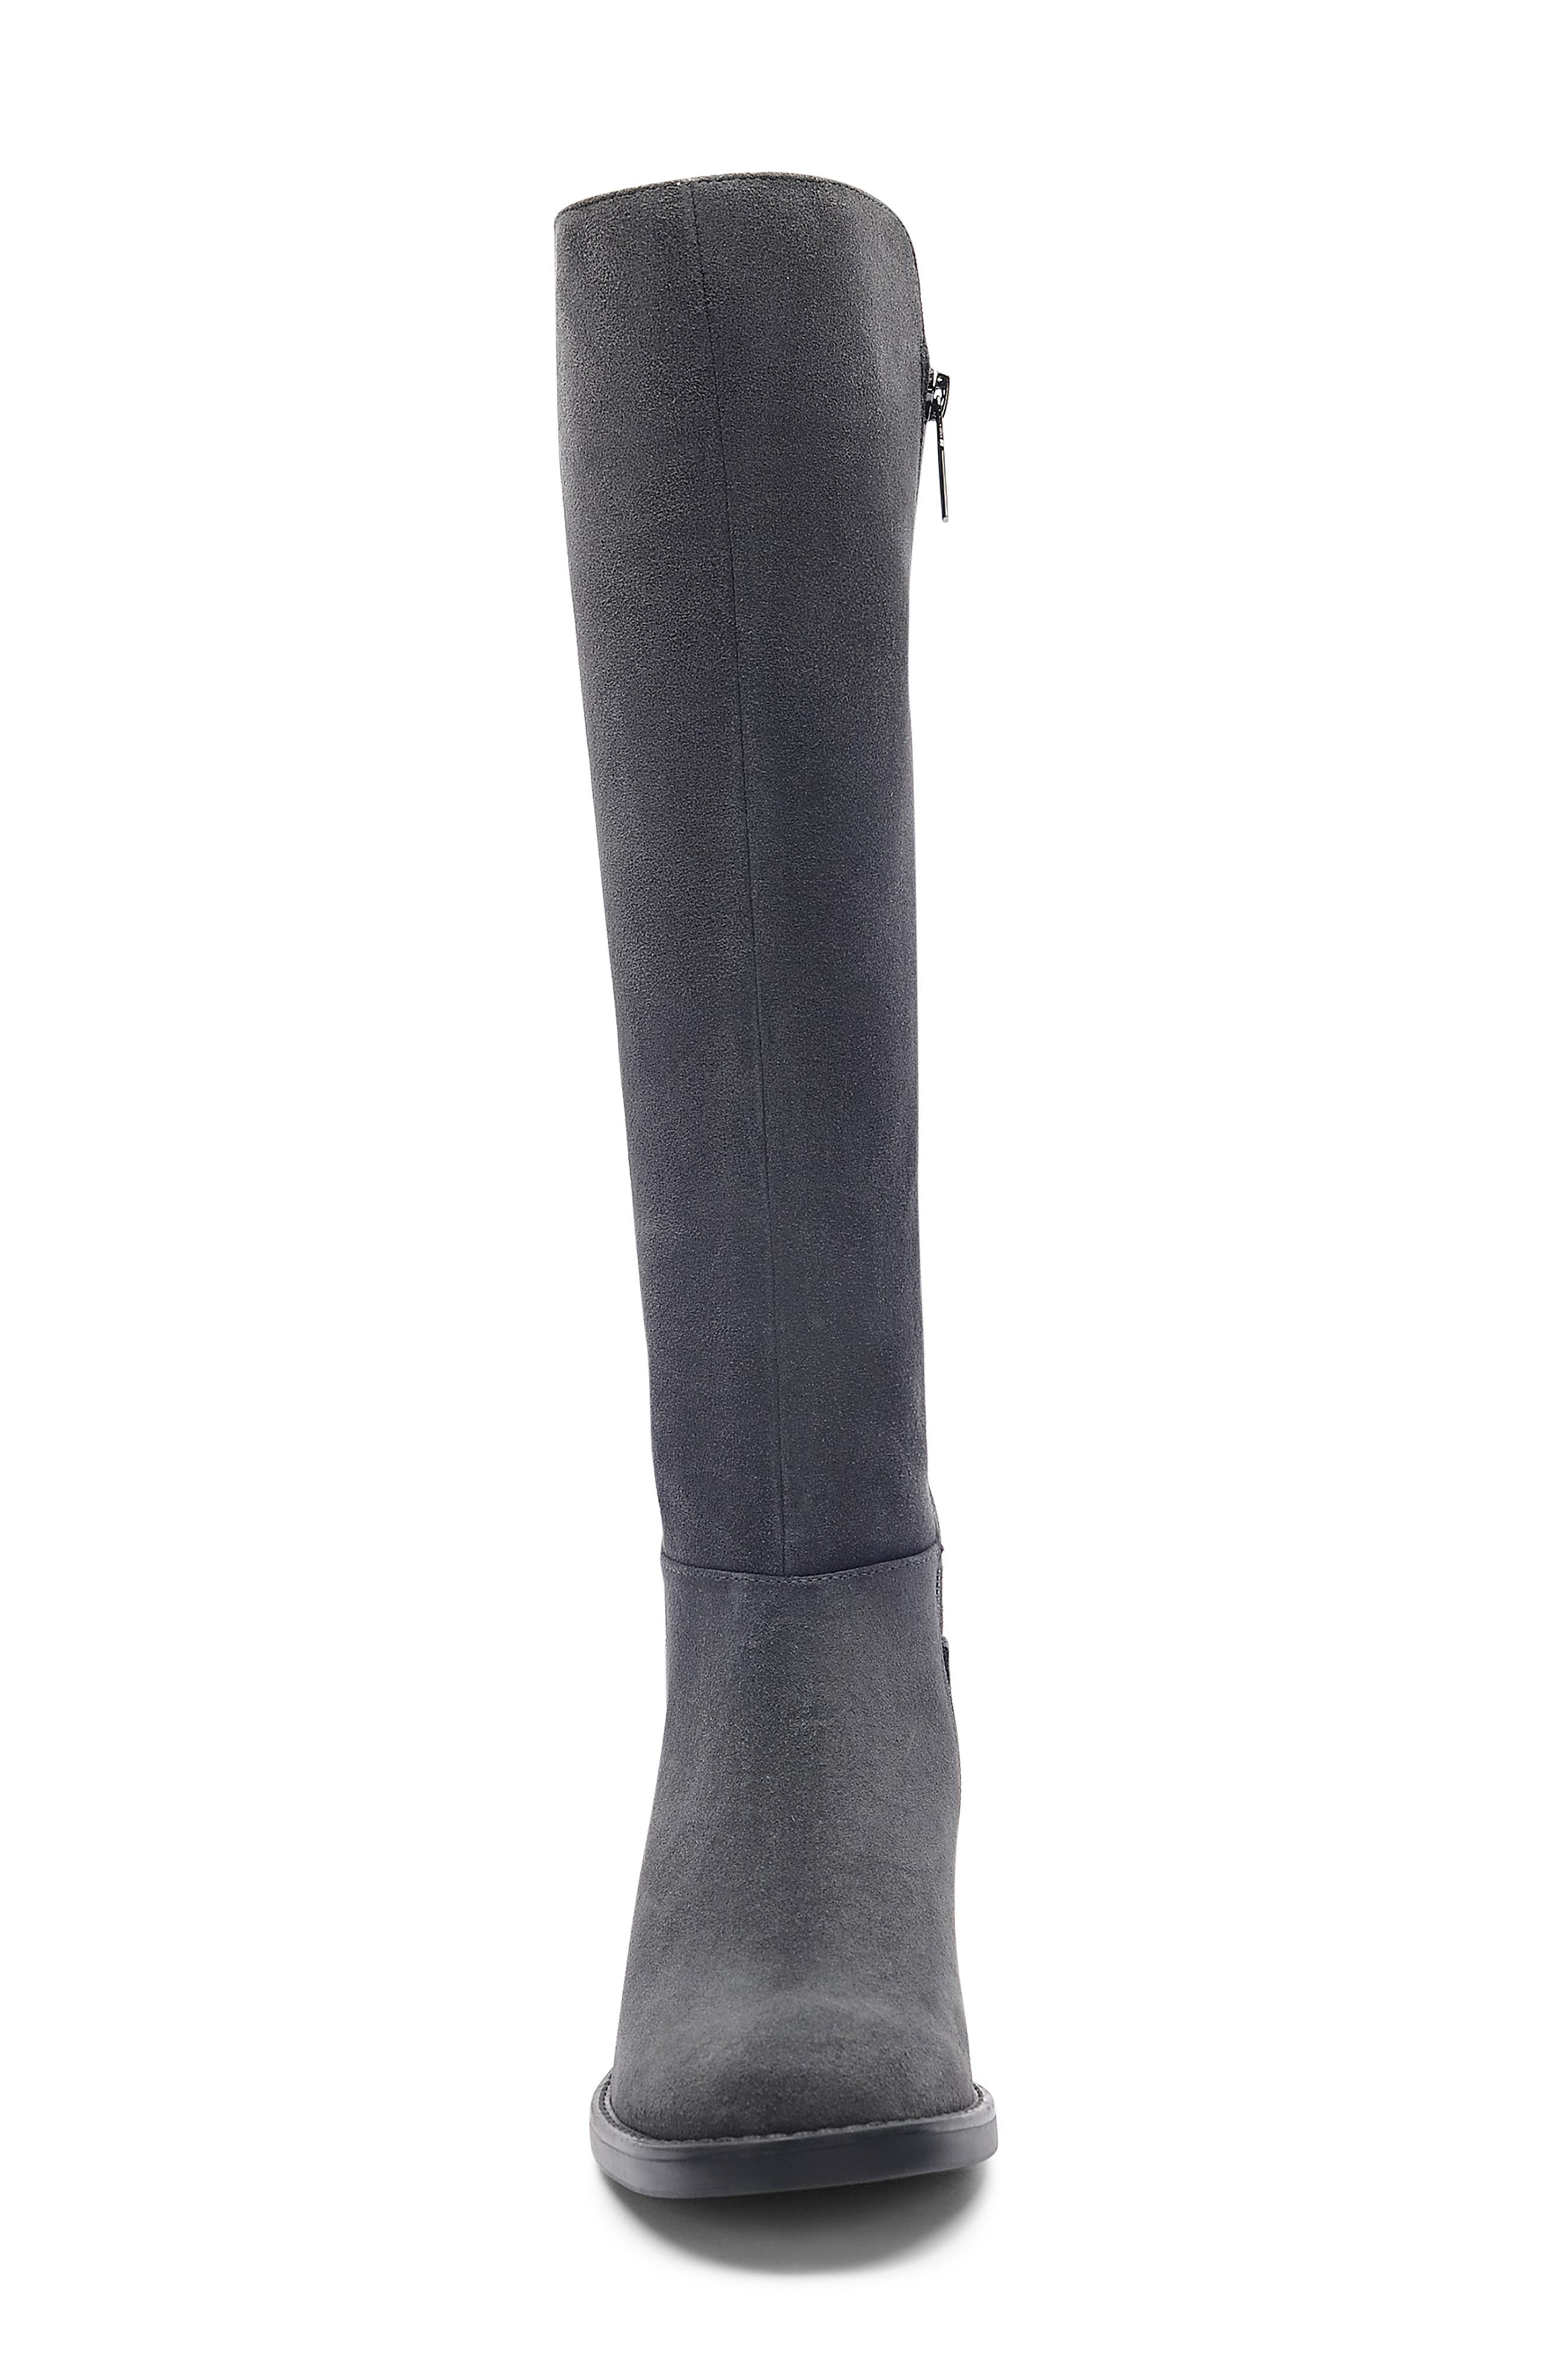 BLONDO, Ellie Waterproof Knee High Riding Boot, Alternate thumbnail 4, color, DARK GREY SUEDE